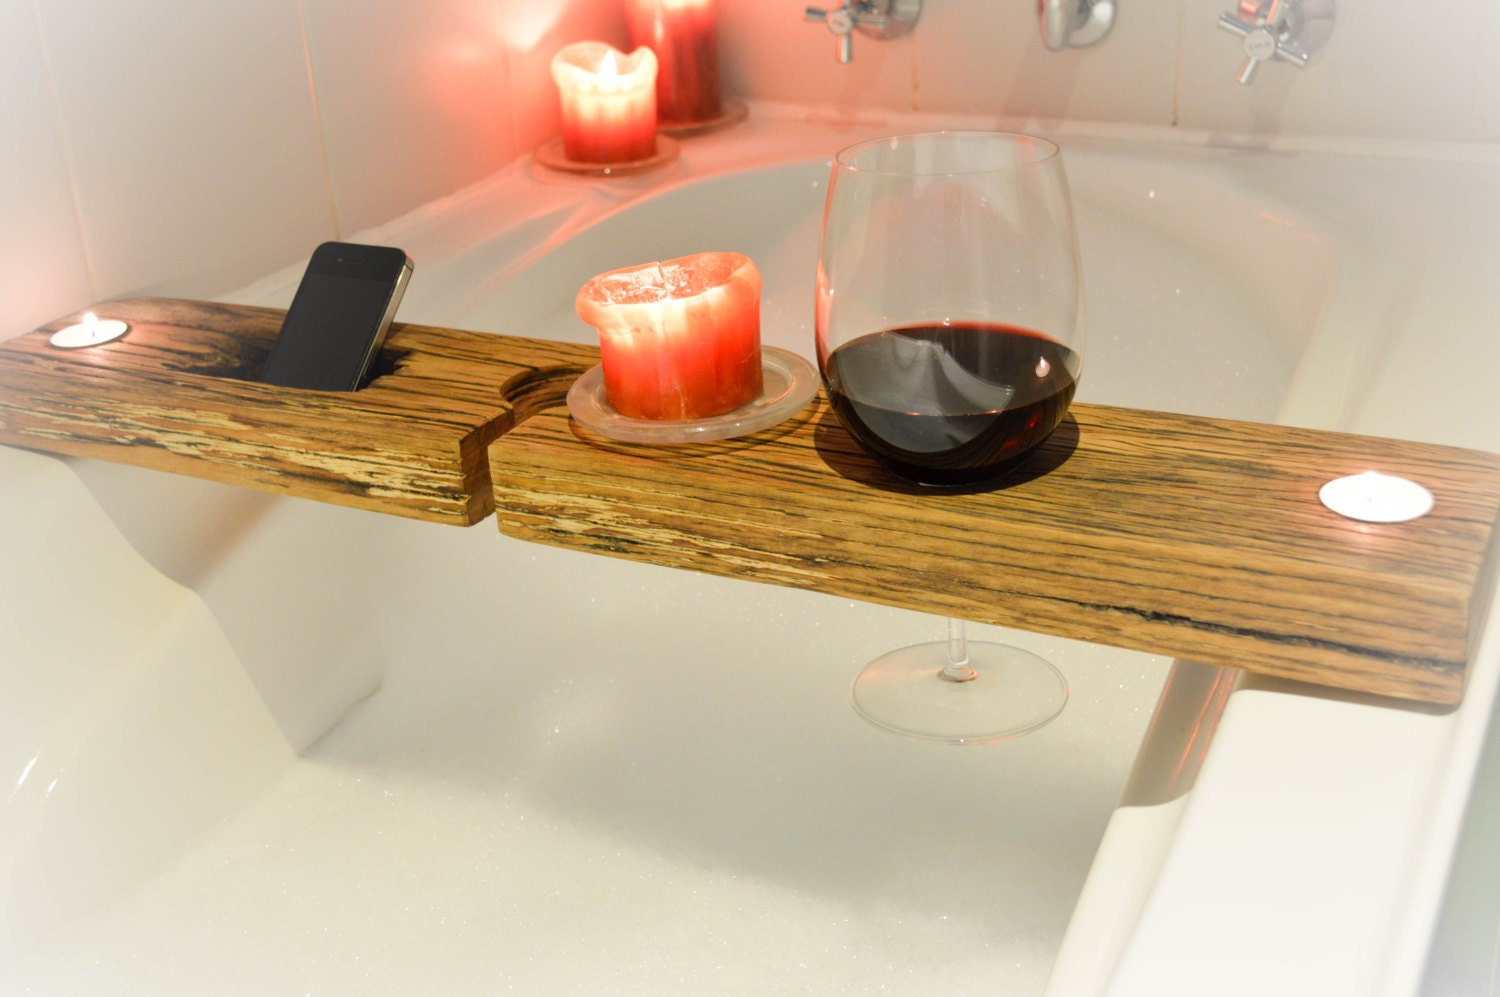 Bath tray bath caddy recycled wood with phone holder for Bathroom tray